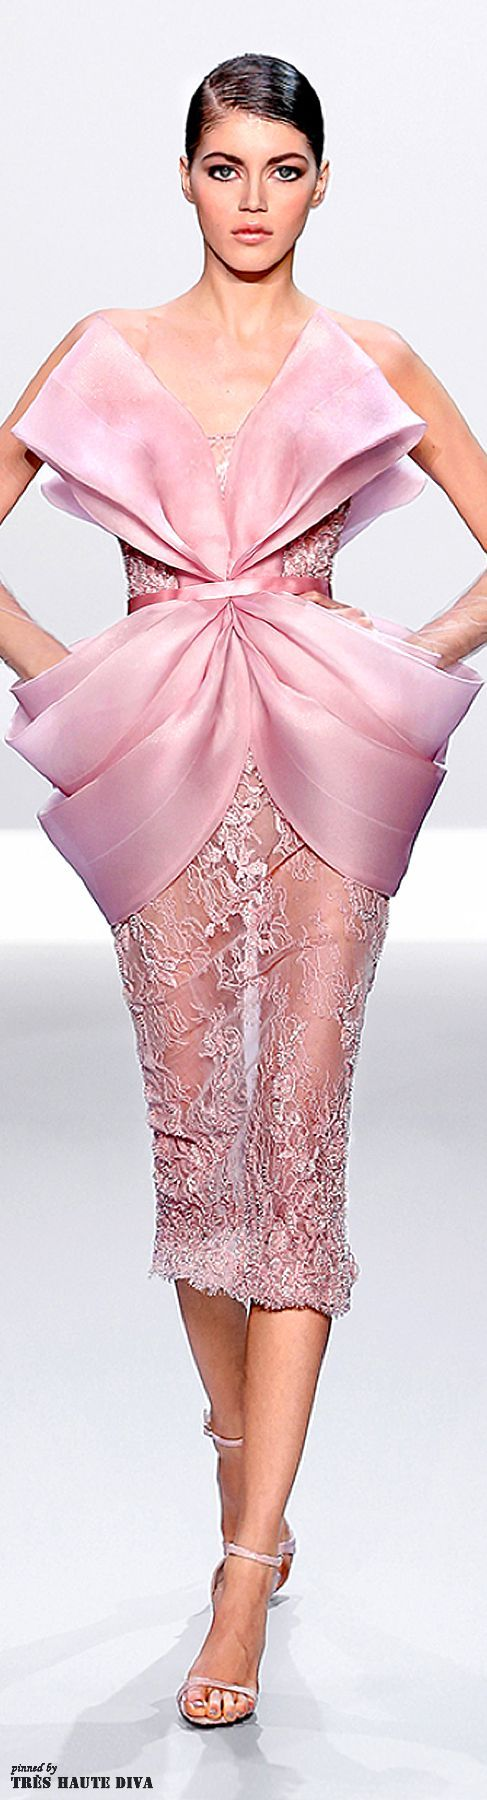 Robe rose, dentelle, noeud et transparence, Ralph & Russo